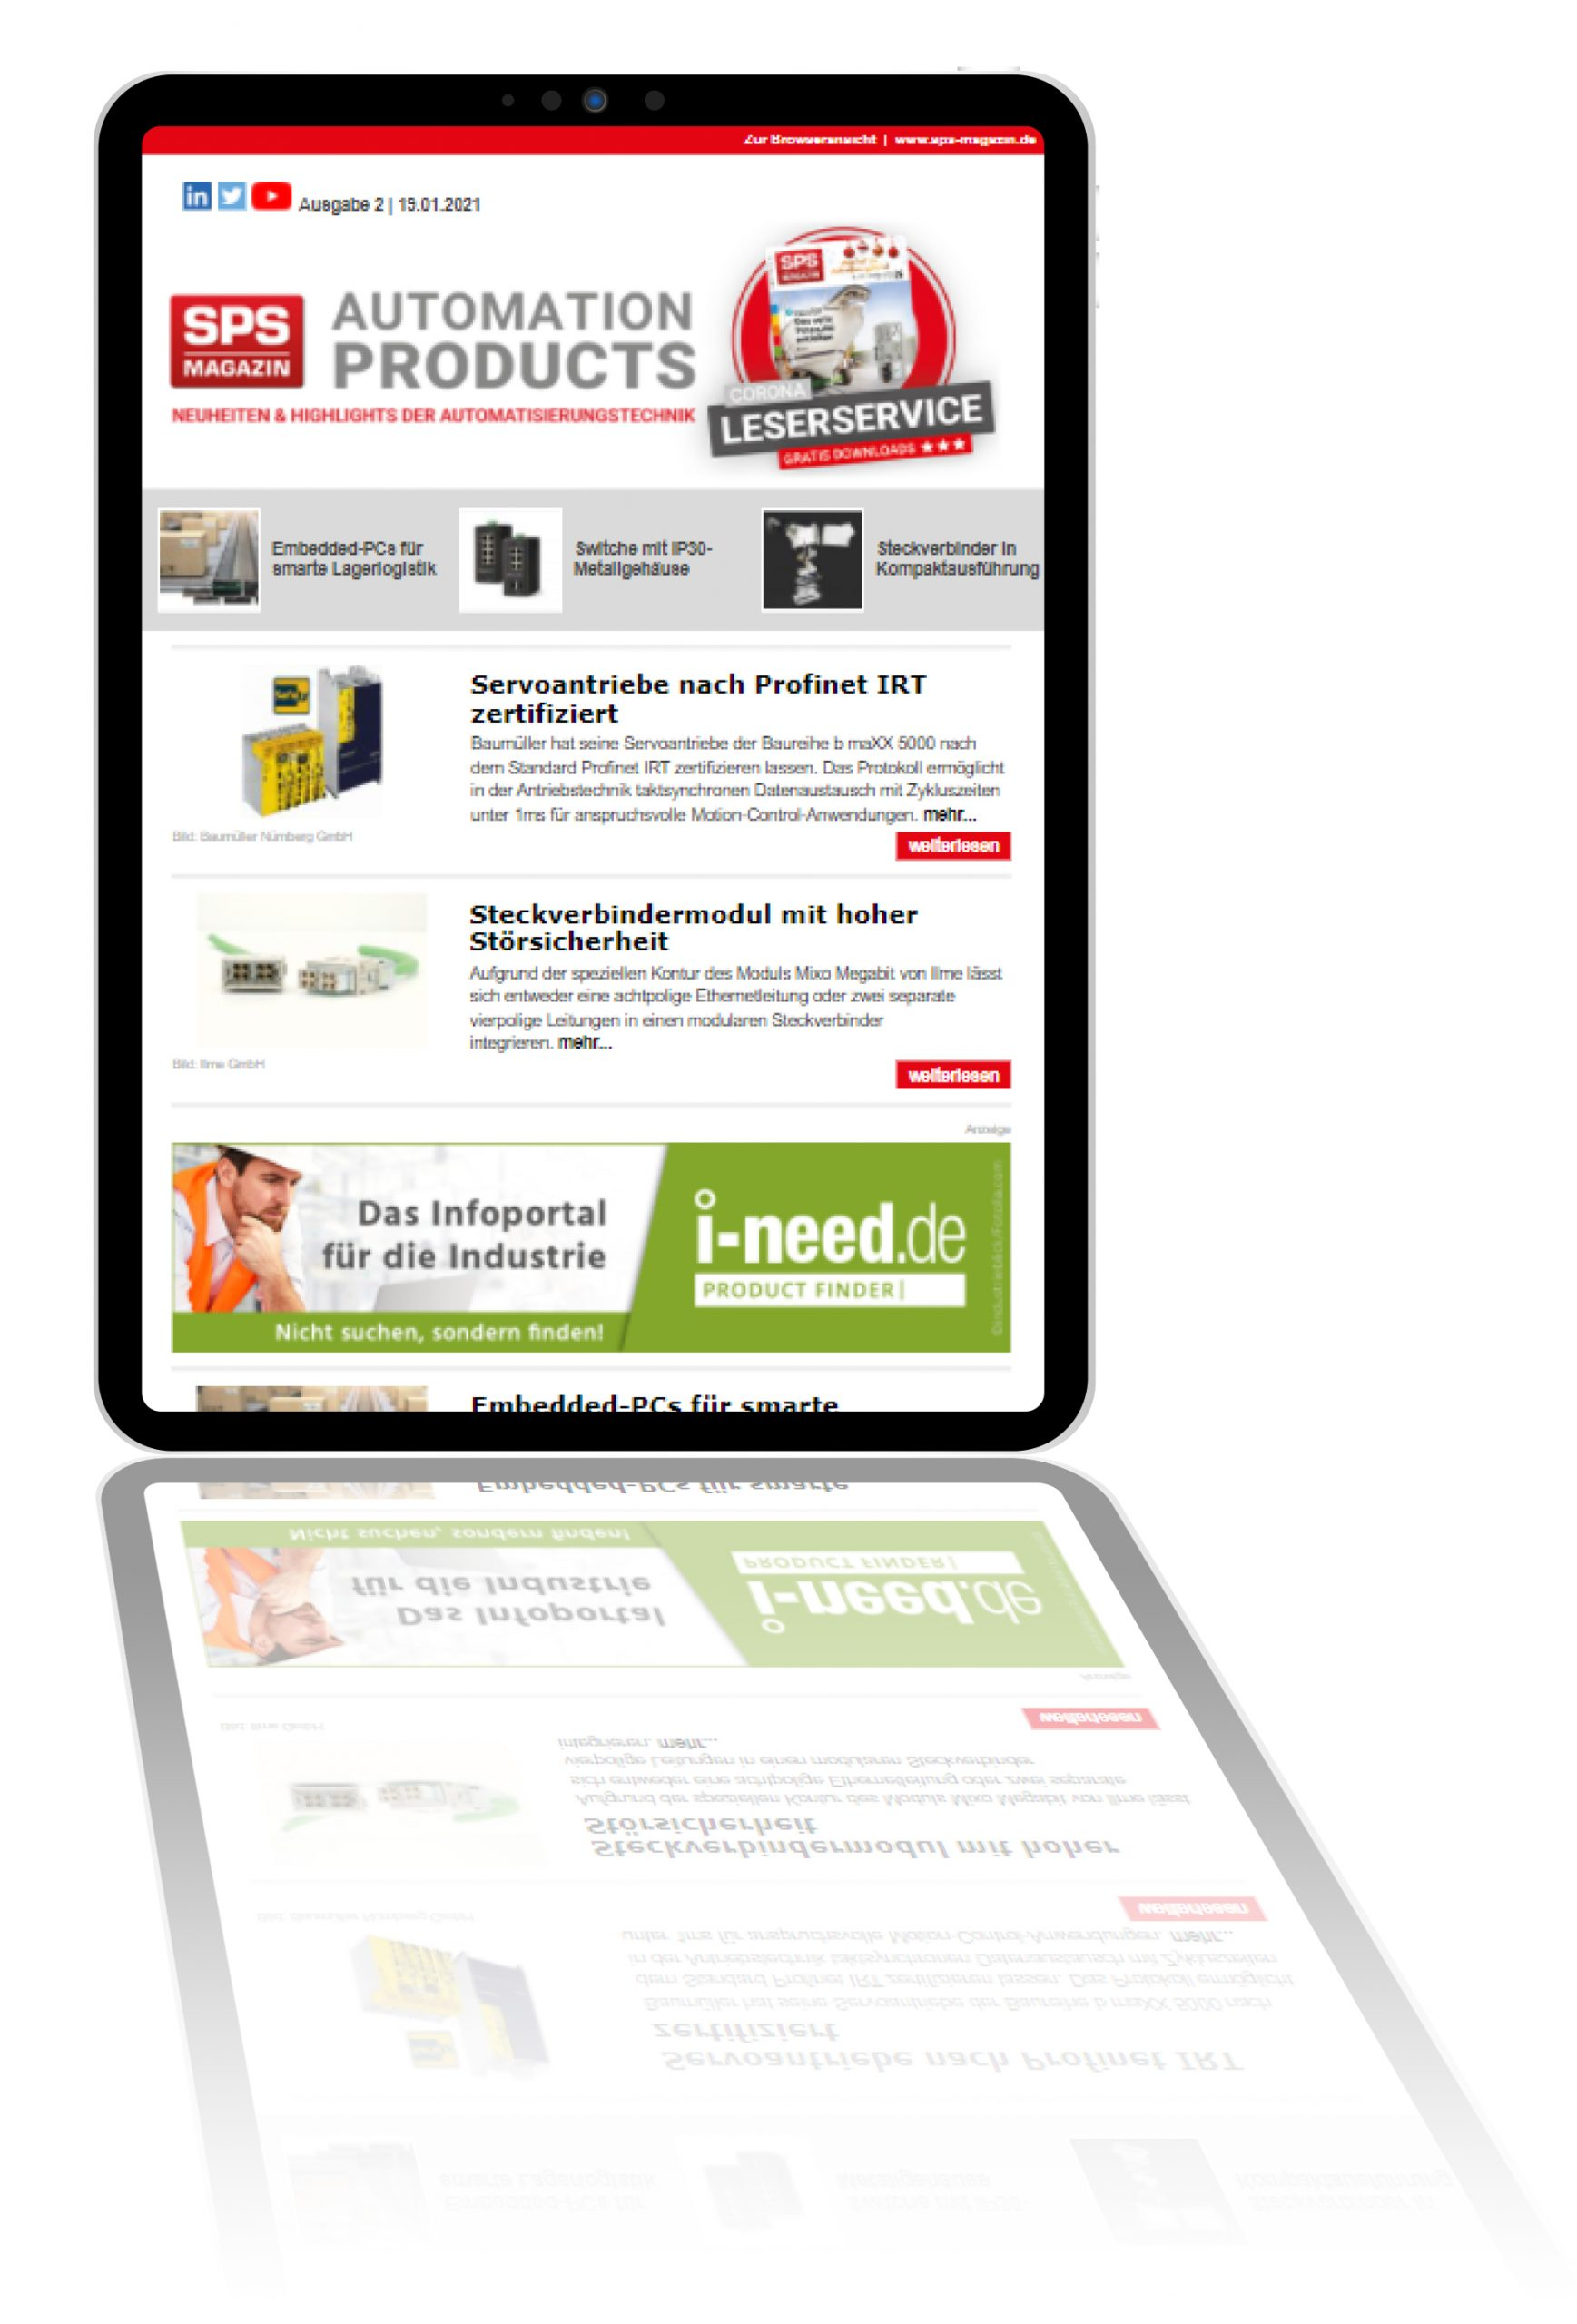 Automation Product Newsletter im neuen Layout